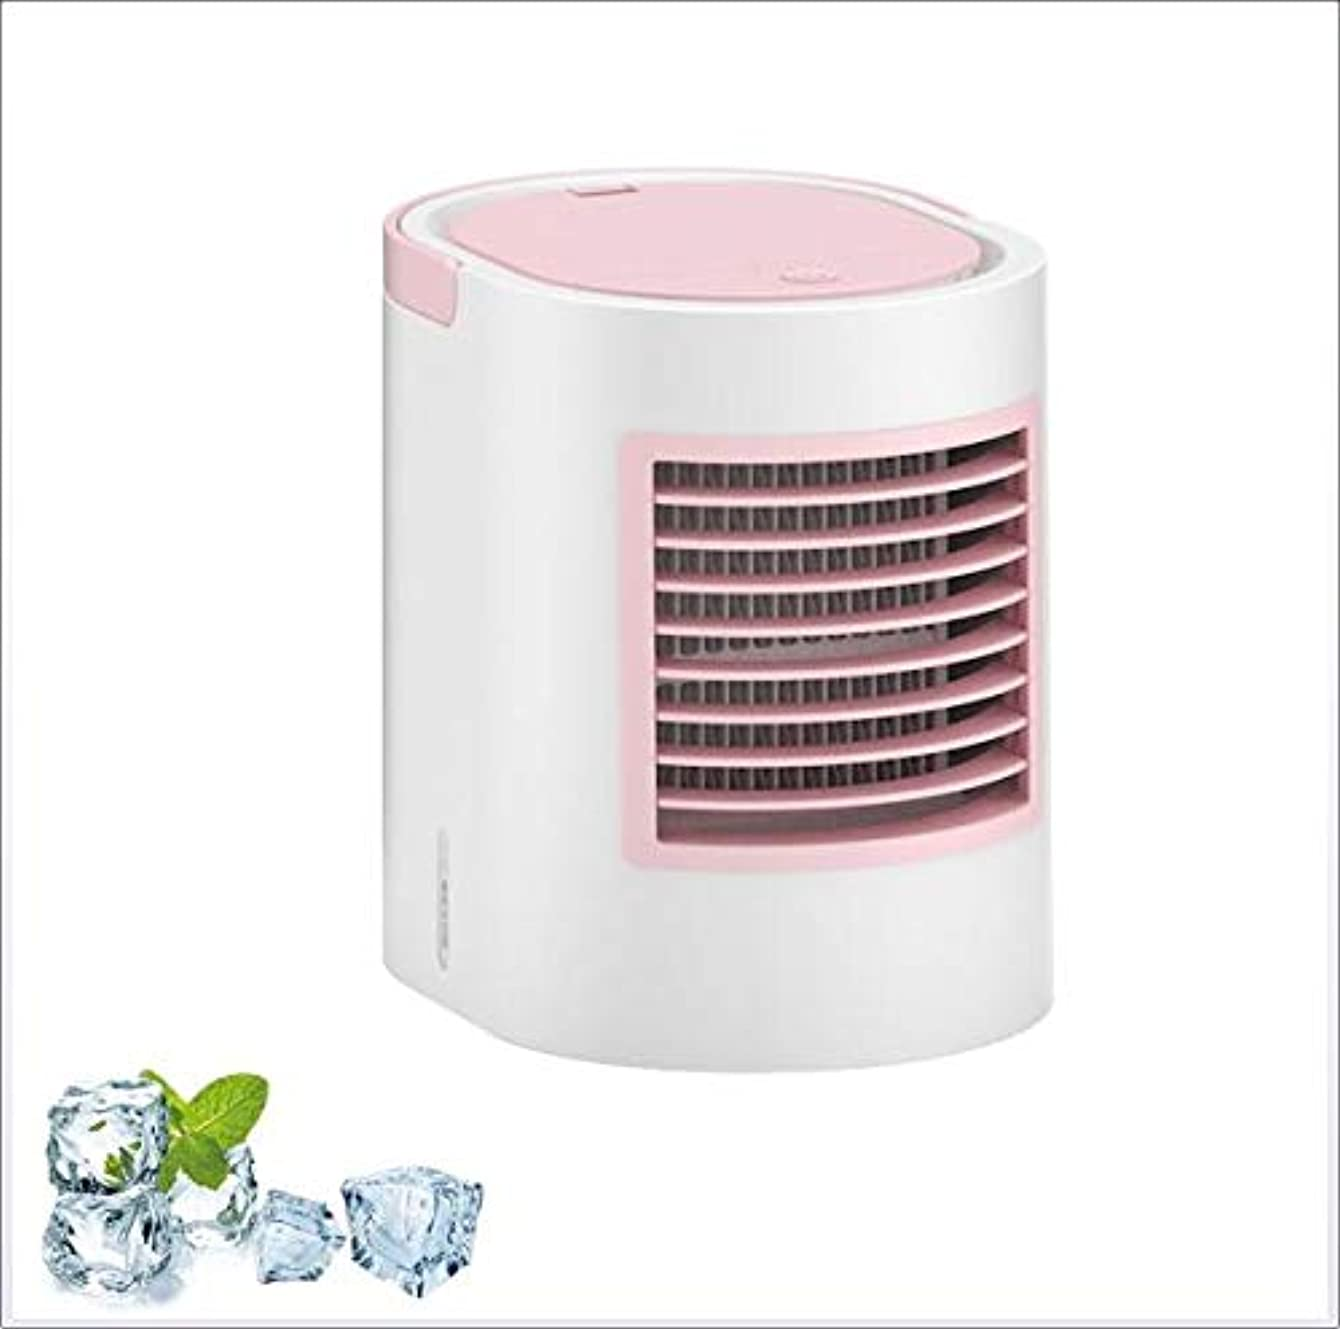 DJG Human Air Cooler, Portable Air Conditioner Chiller, USB Mini, Suitable for Desktop Evaporative Air Cooler, Air Conditioning Fan